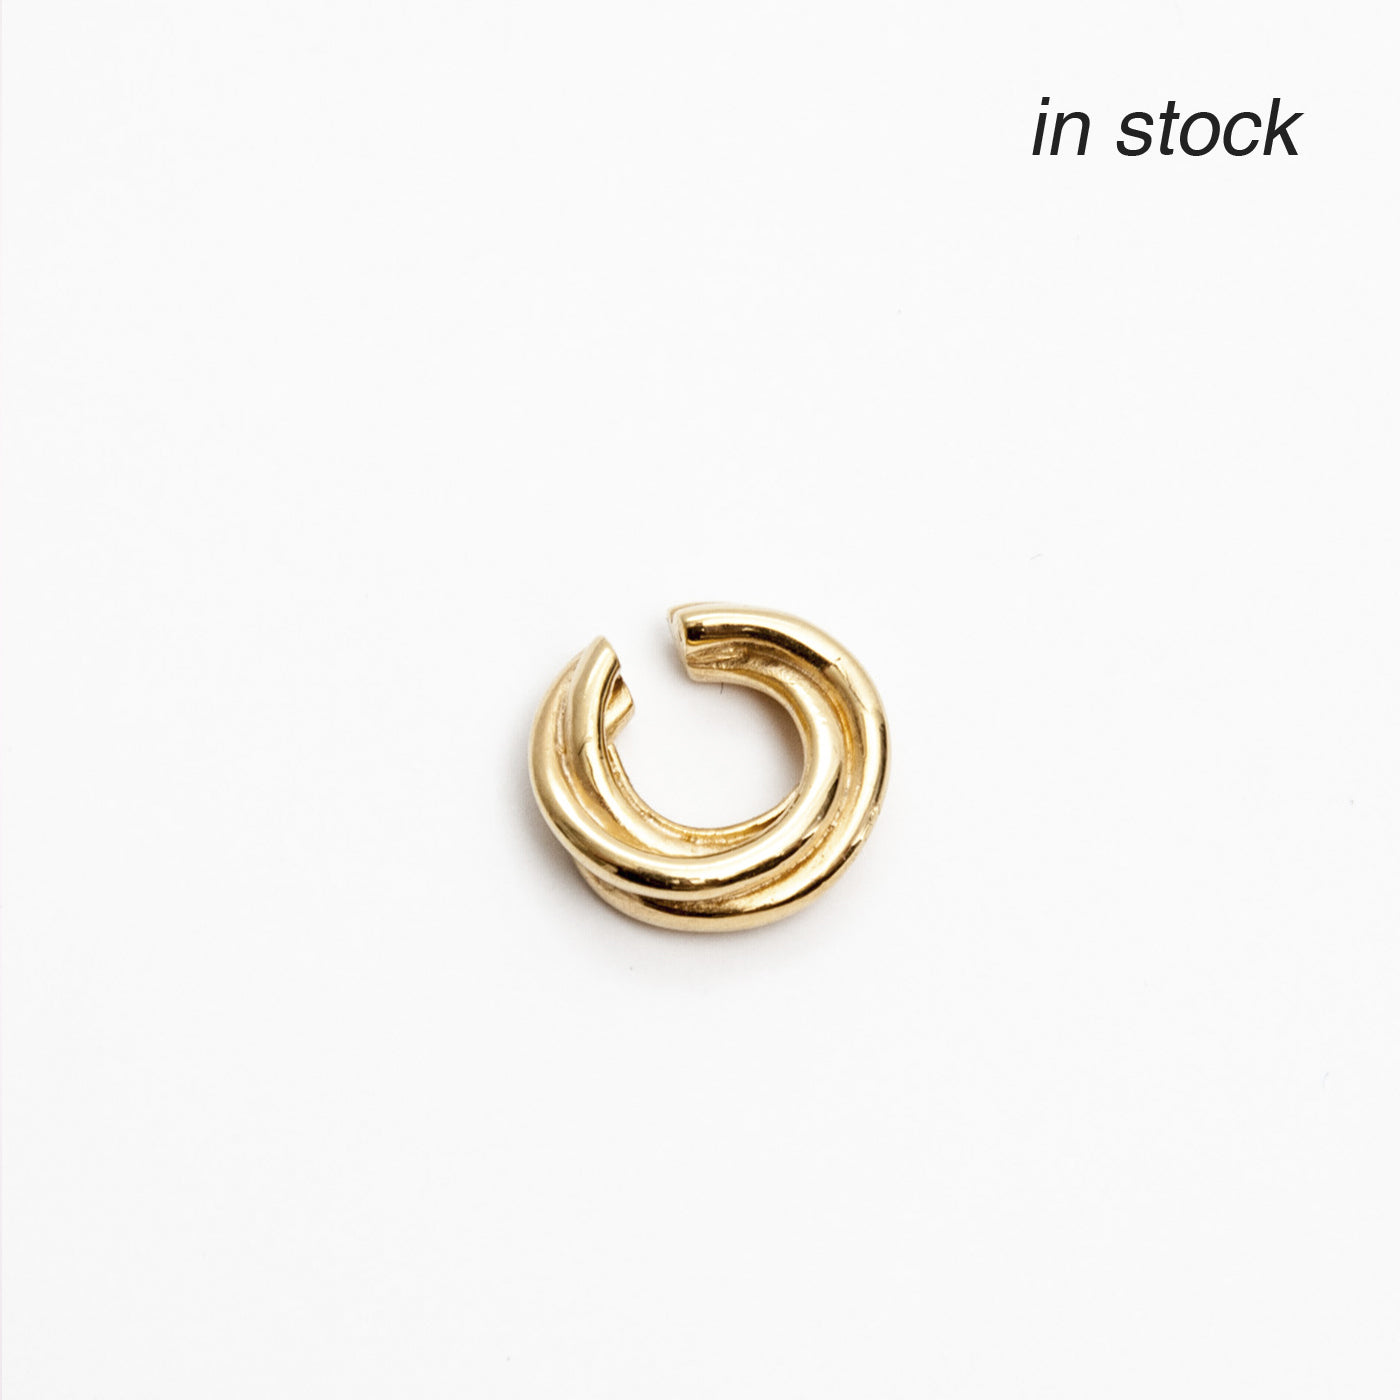 ear cuff golden mini flow product view innan jewellery in stock